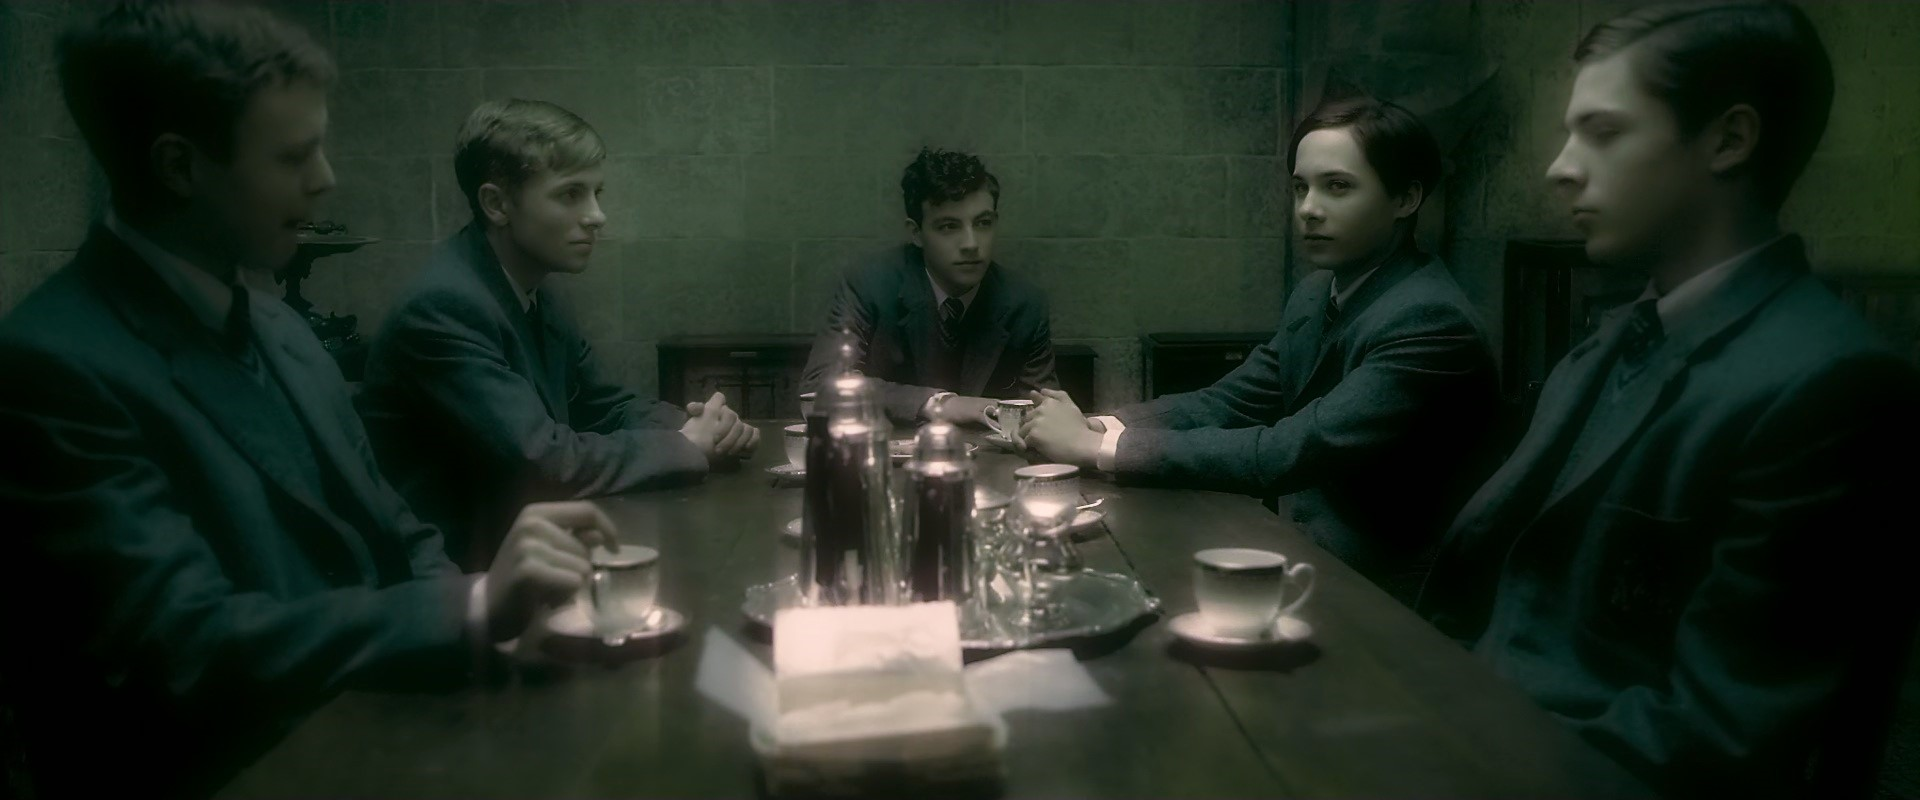 Tom Riddle's gang | Harry Potter Wiki | FANDOM powered by Wikia